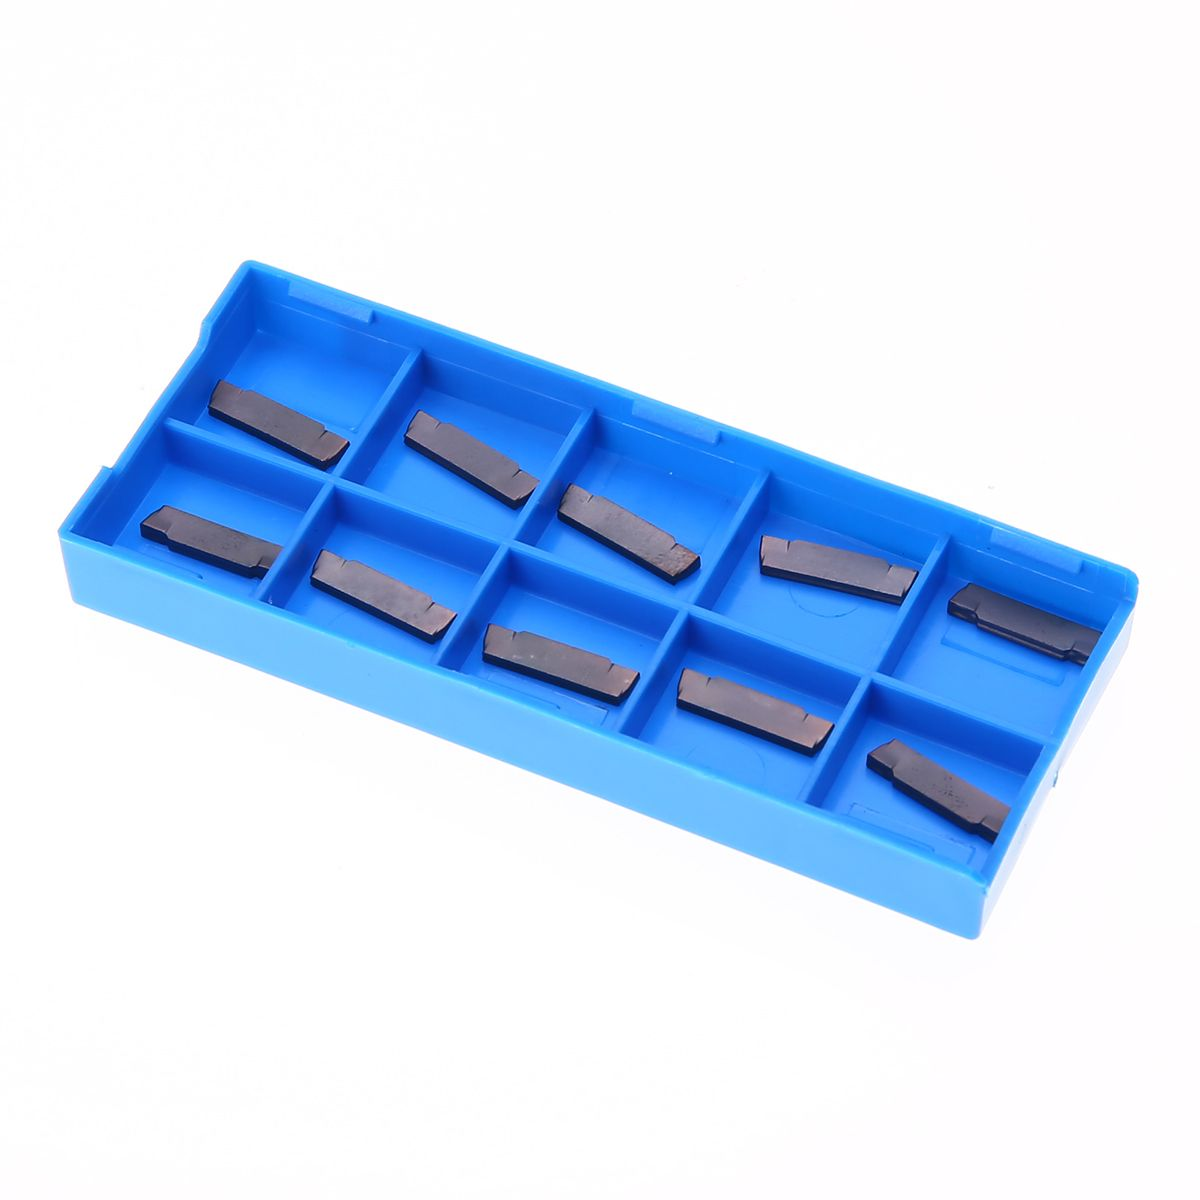 10pcs MGMN200-G LDA Carbide Inserts High Quality Inserts with Box For Lathe Grooving Cutting Tool